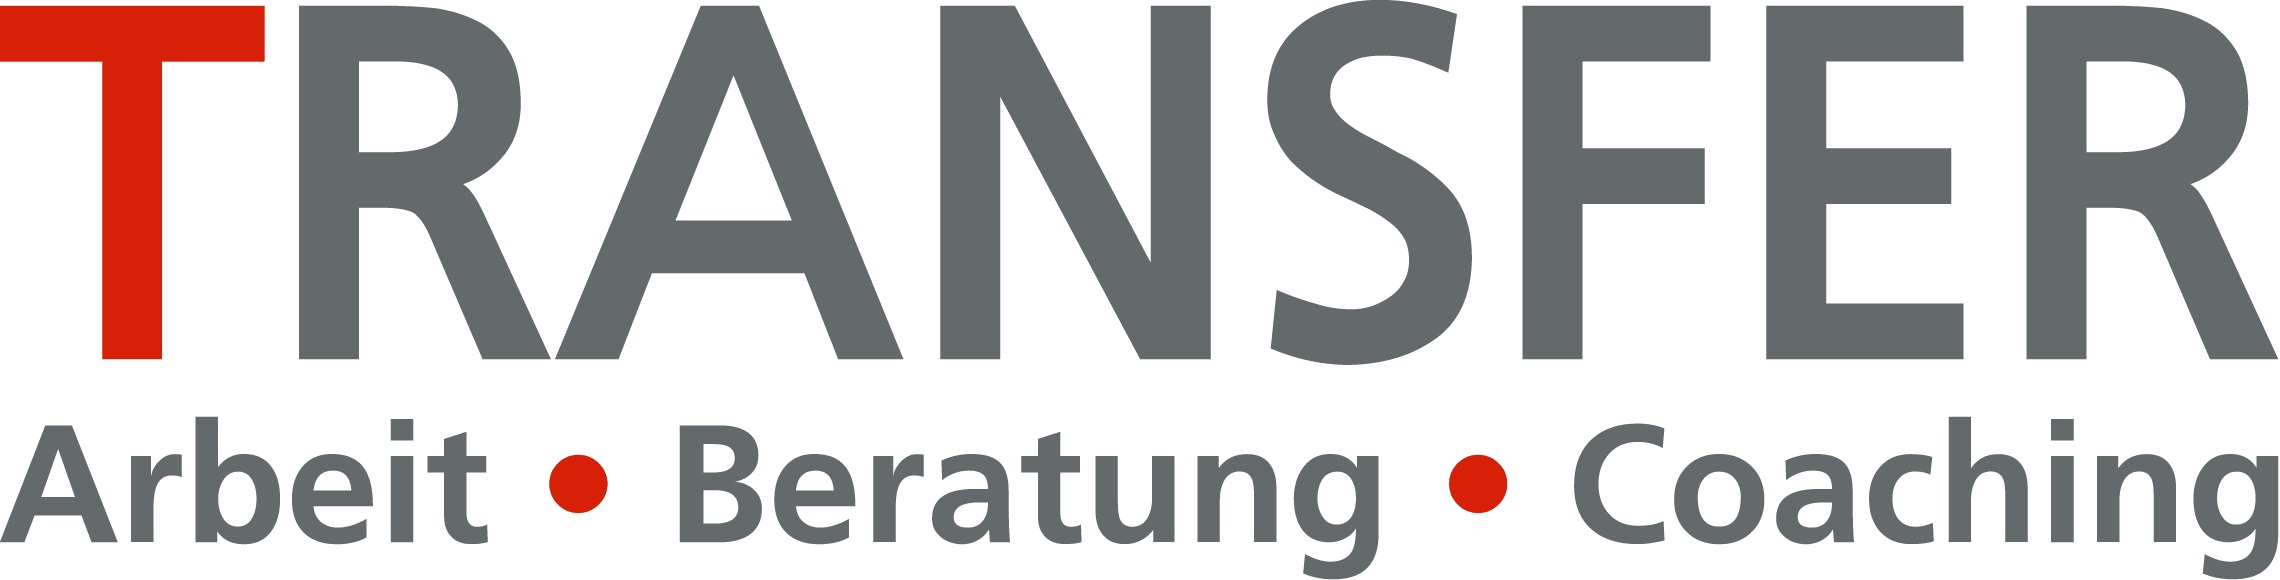 Firmenlogo Transfer GmbH & Co. KG